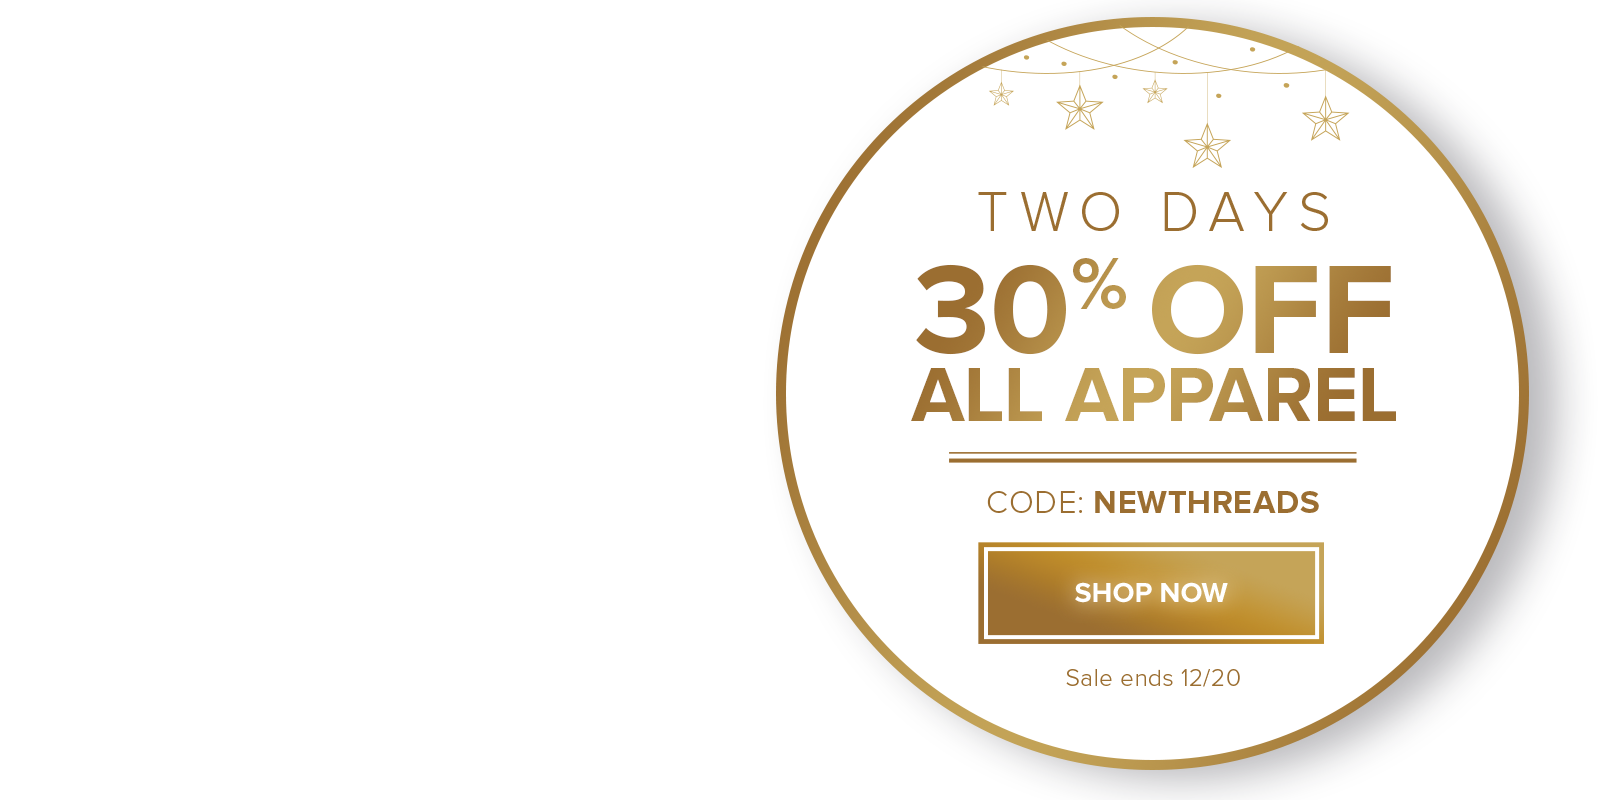 30% off apparel with code NEWTHREADS